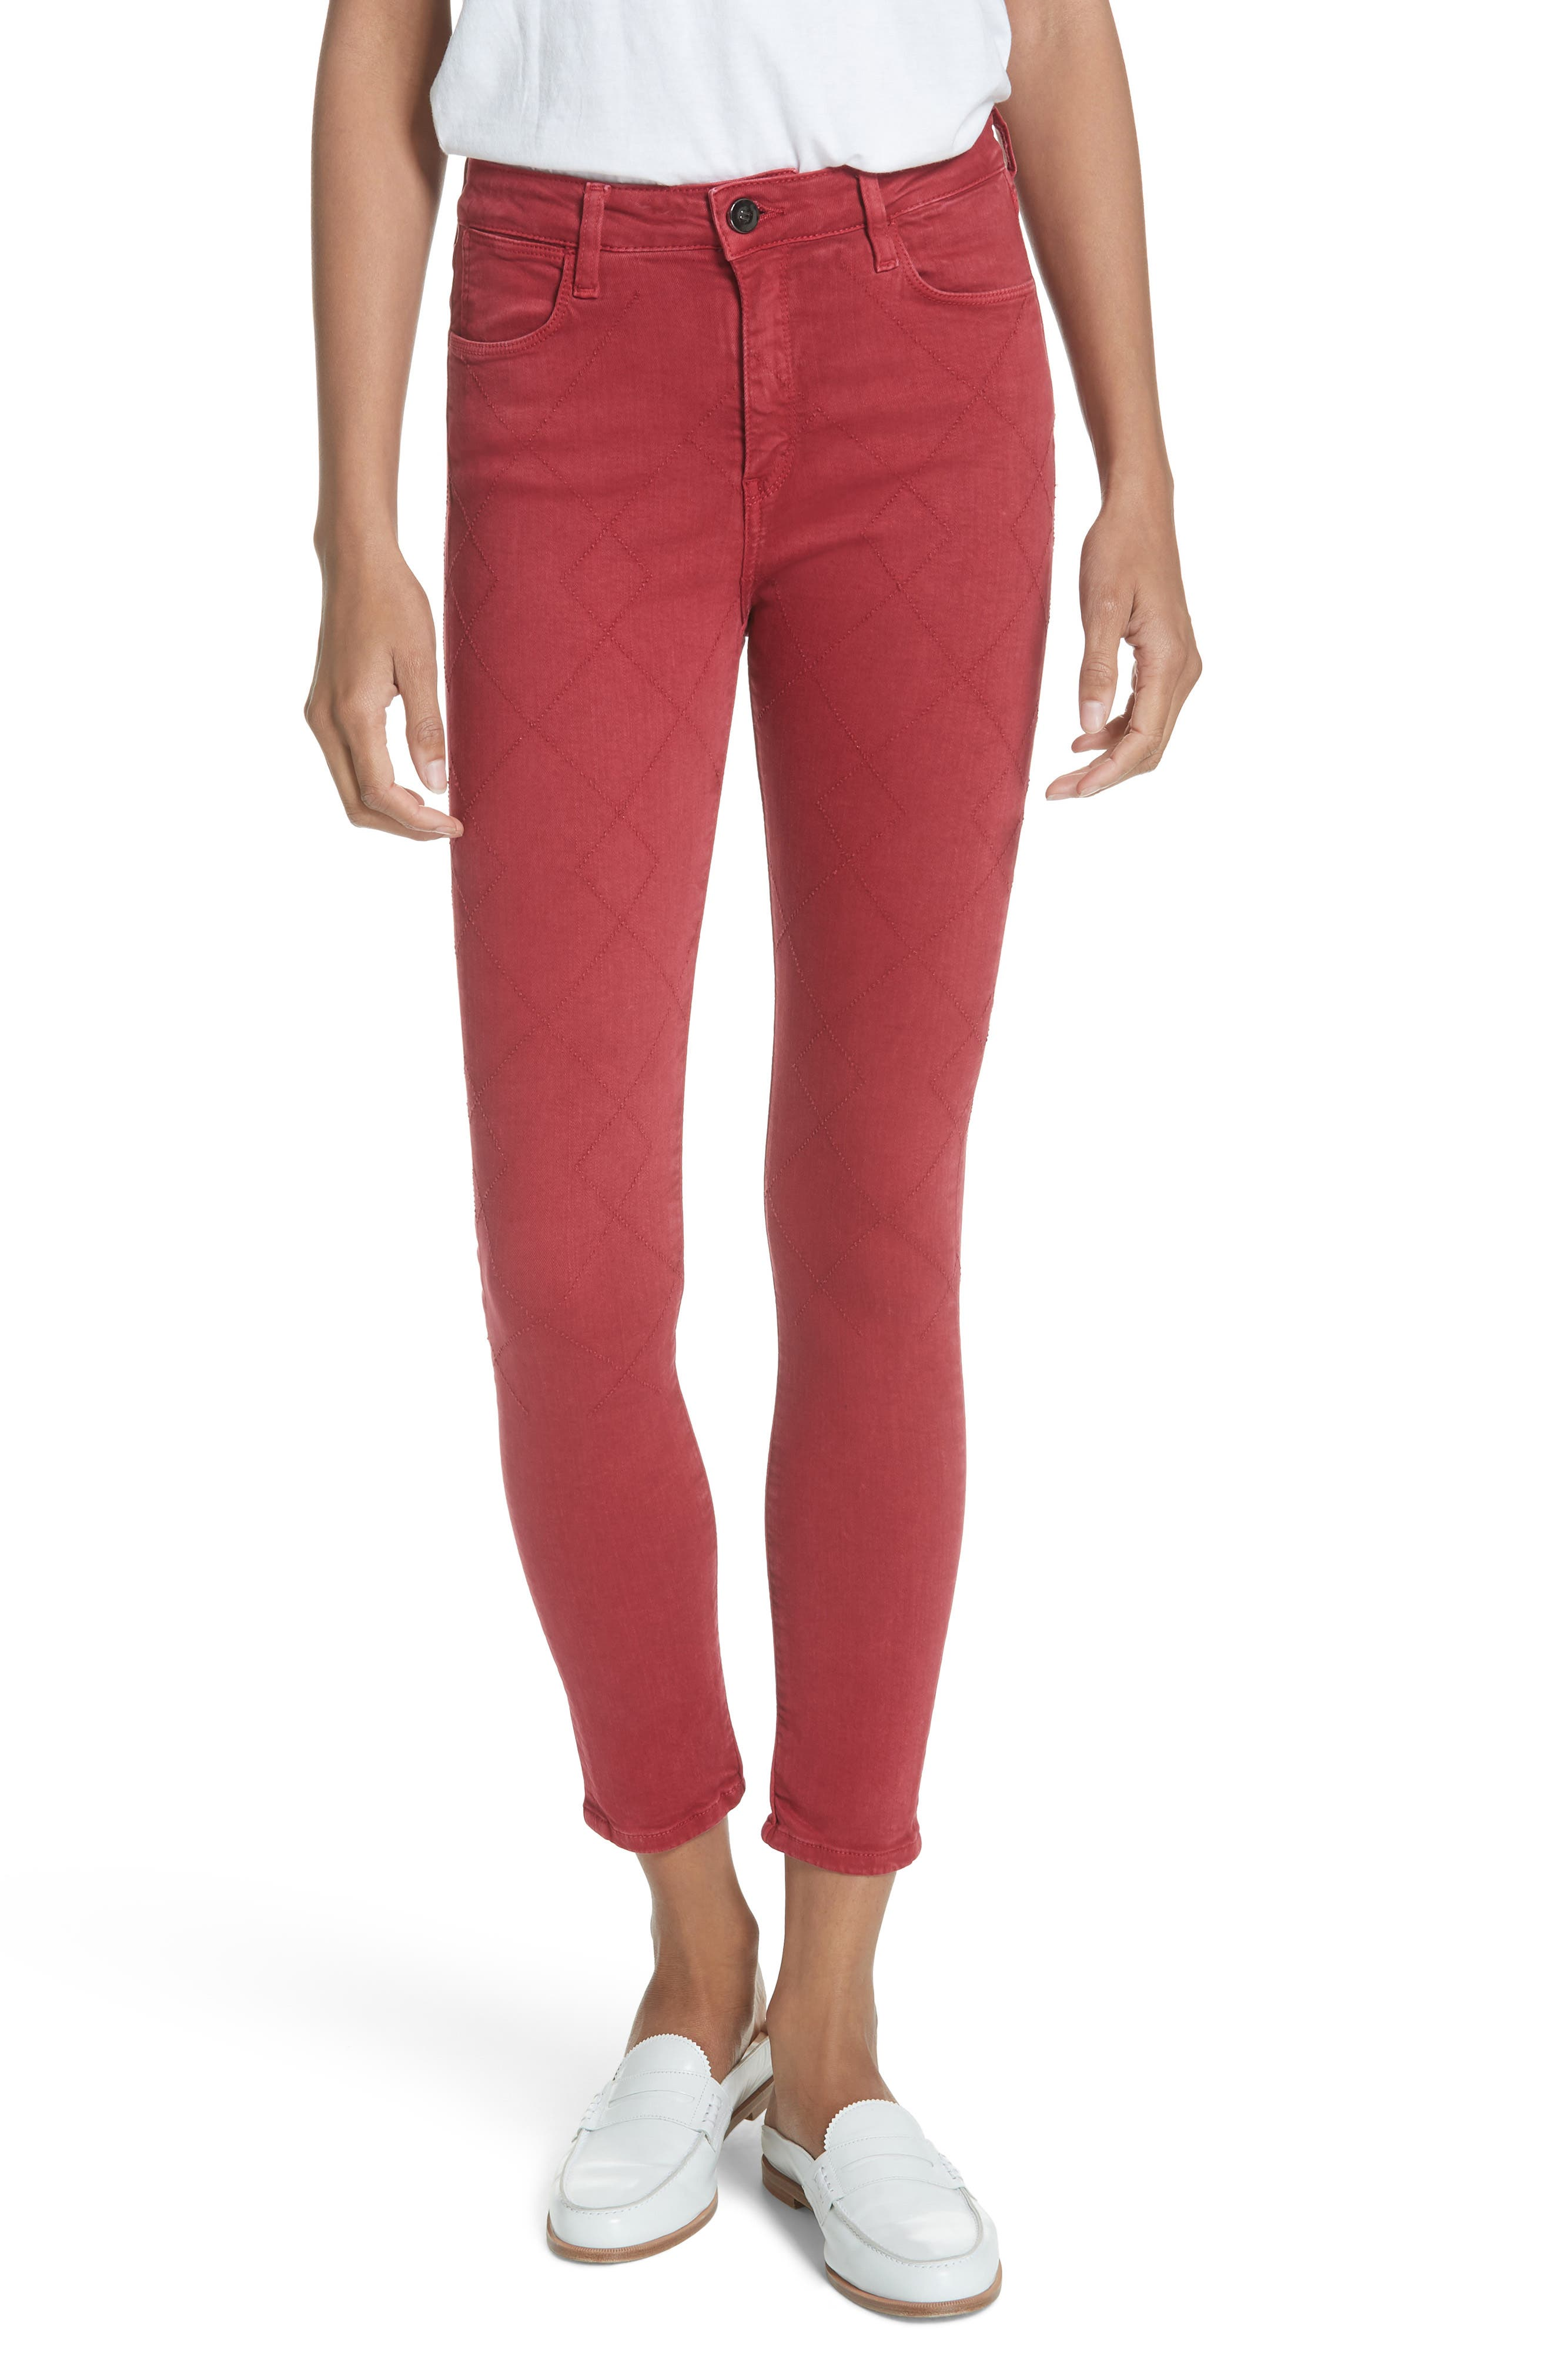 BROCKENBOW Rolling Old Reina Lattice Stitch Skinny Jeans in Framboise